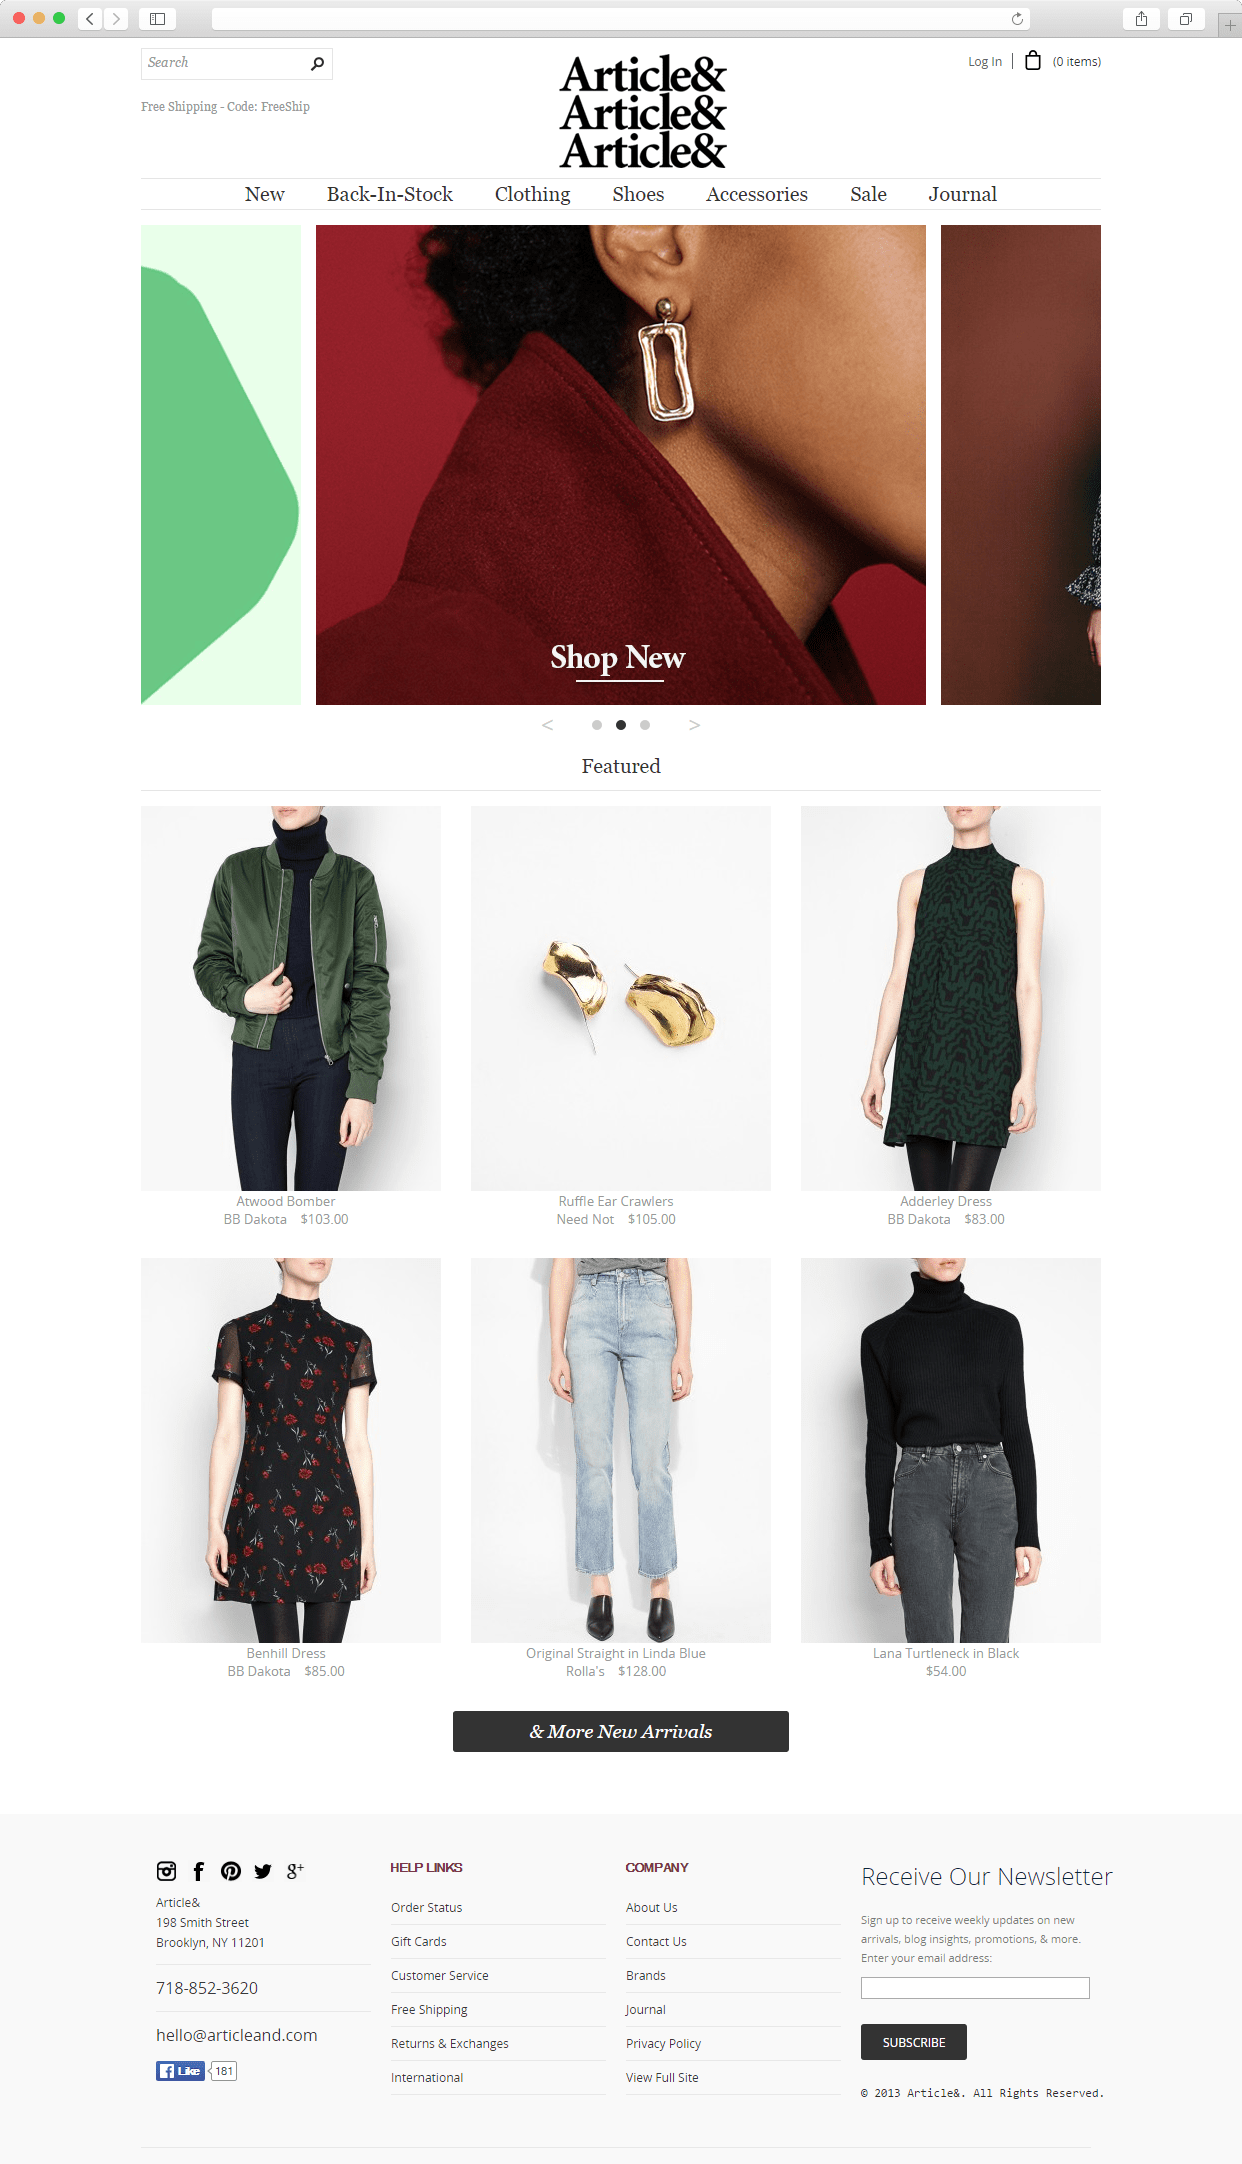 Modern e-Commerce Web-Design Trends. Part 1